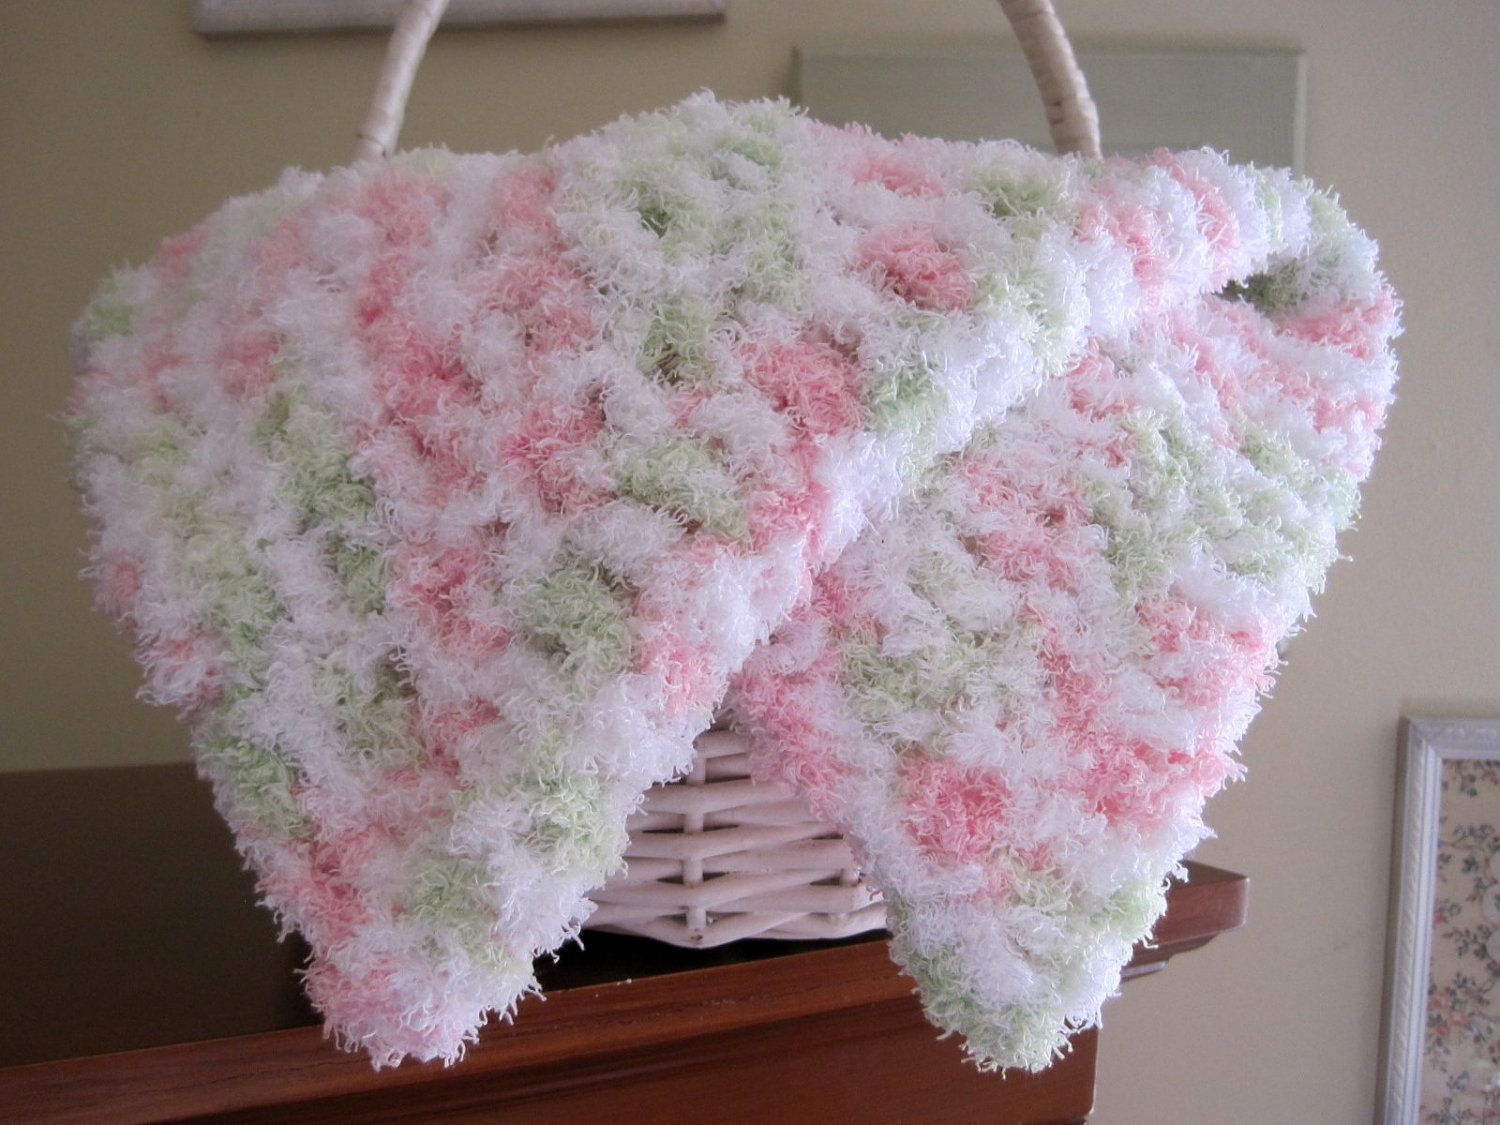 Crochets blankets for littlr girls request a custom order and thursdays handmade love week 62 theme baby girl blankets includes links to free crochet patterns bankloansurffo Choice Image